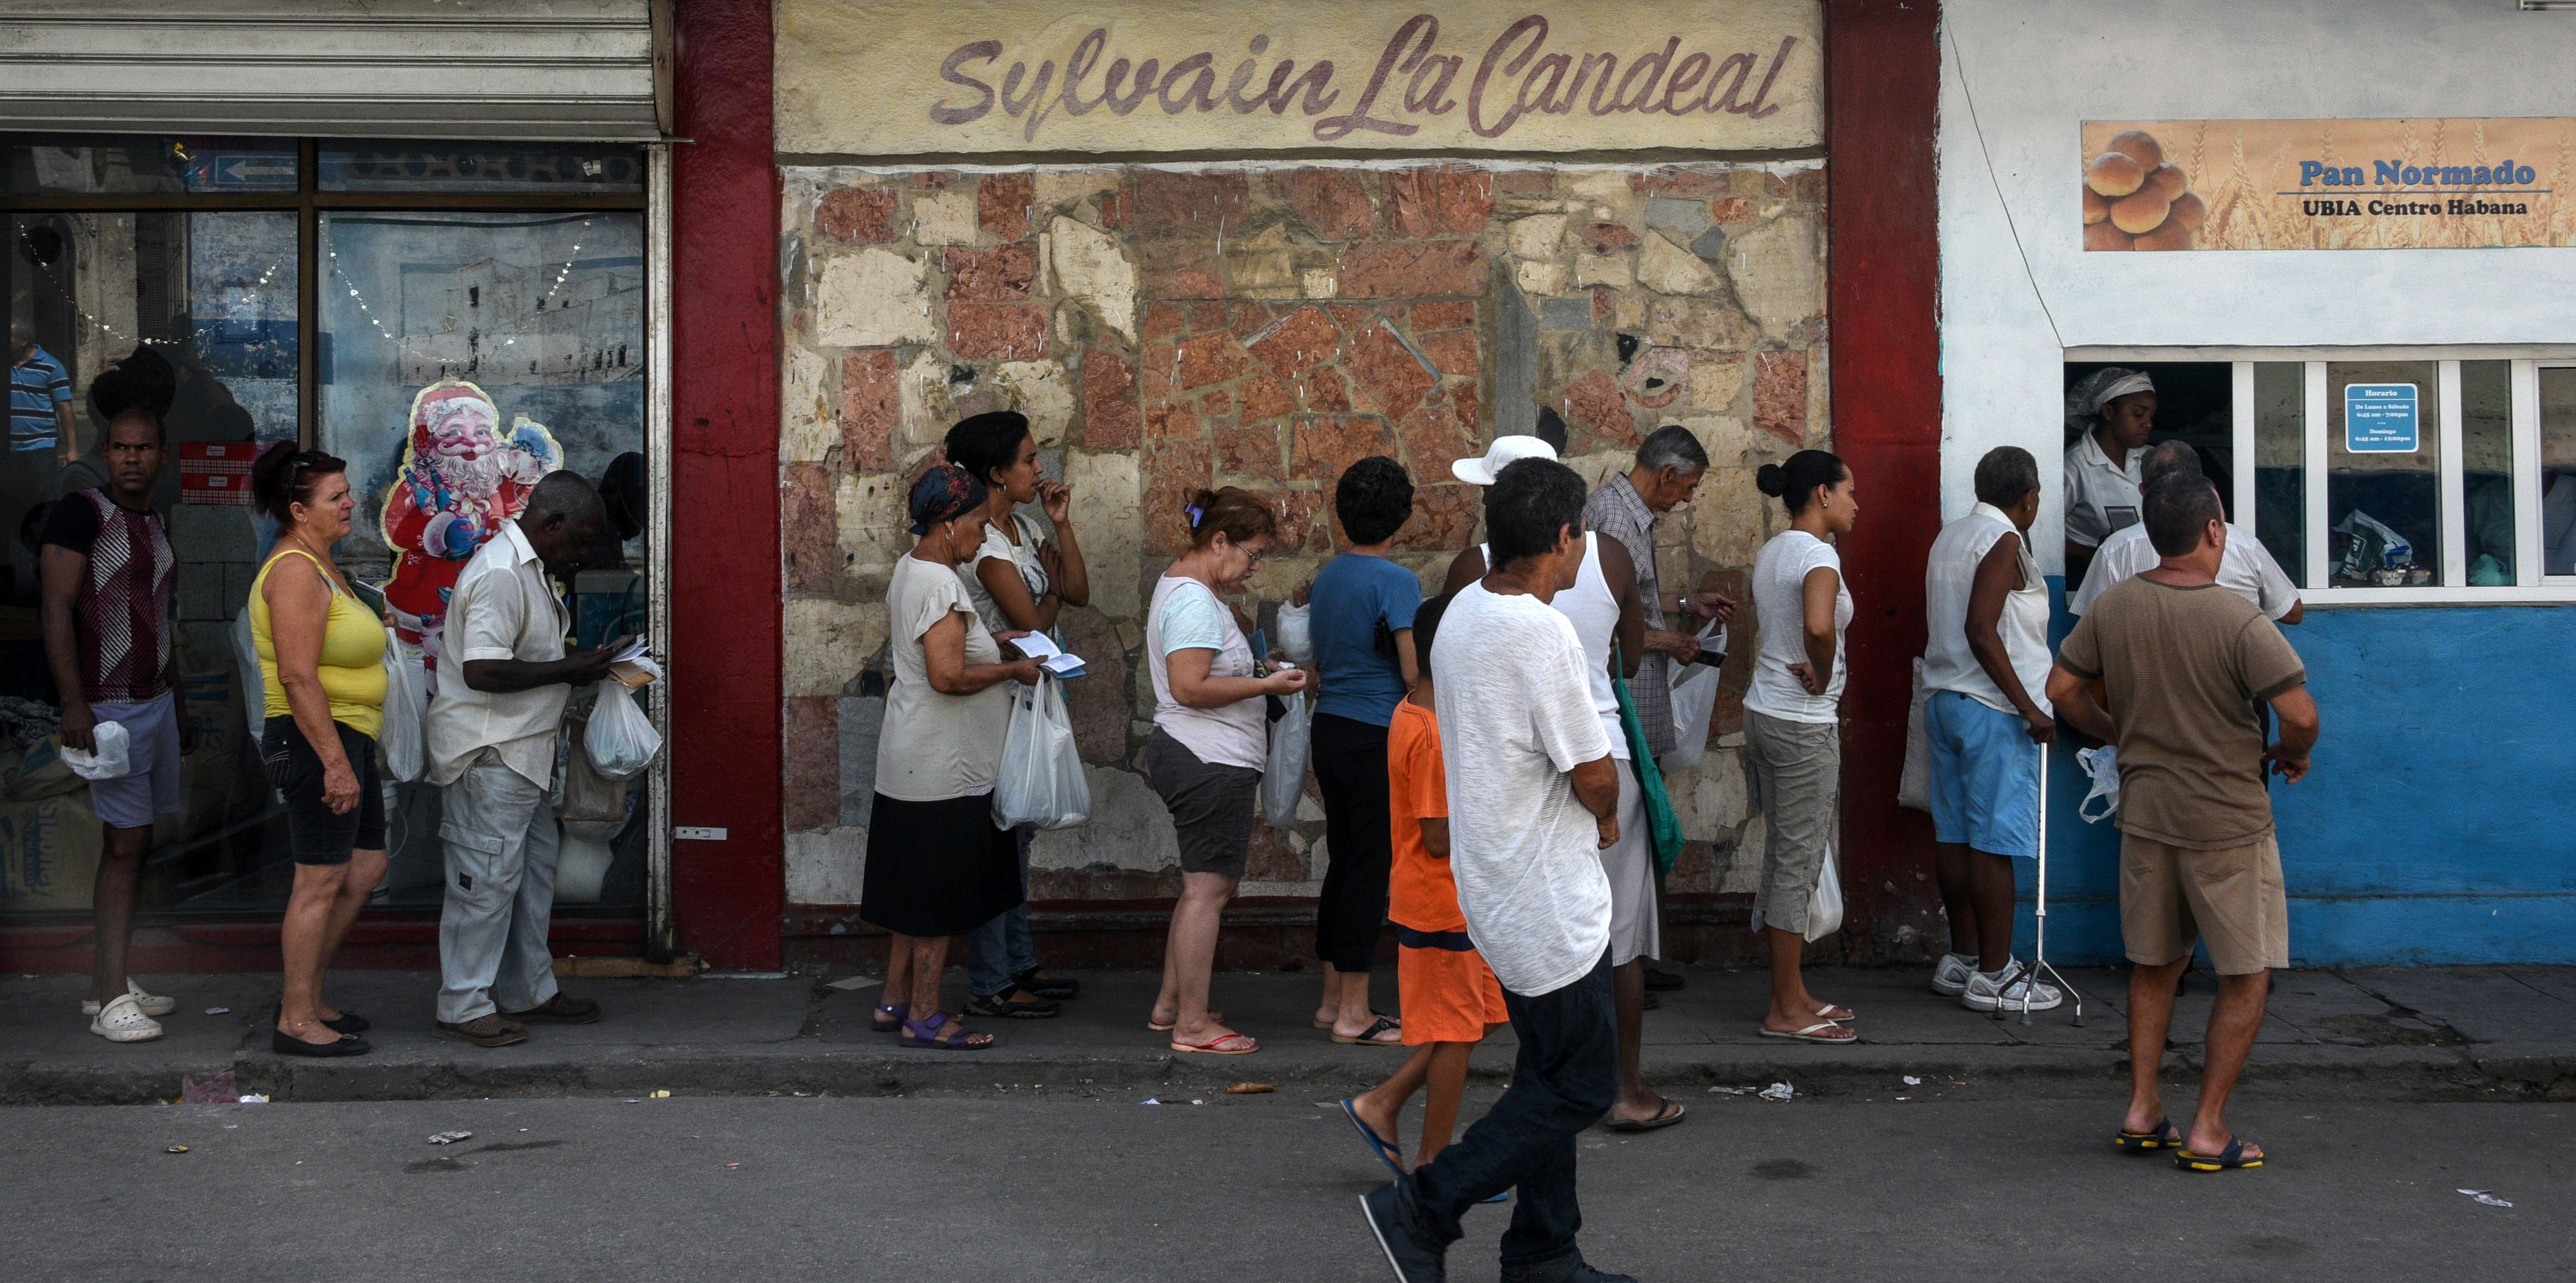 Cubans queue to buy bread in a street of Havana, on March 19, 2016. Political and economic reforms in Cuba will be a no-go area during talks between Cuban leader Raul Castro and US President Barack Obama, Cuban Foreign Minister Bruno Rodriguez said Thursday. Obama will be on Sunday the first sitting US president to visit Cuba since 1928, capping his historic policy of ending a bitter standoff that has endured since Fidel Castro's overthrow of the US-backed government of Fulgencio Batista in 1959. AFP PHOTO/ RODRIGO ARANGUA / AFP / RODRIGO ARANGUA (Photo credit should read RODRIGO ARANGUA/AFP/Getty Images)